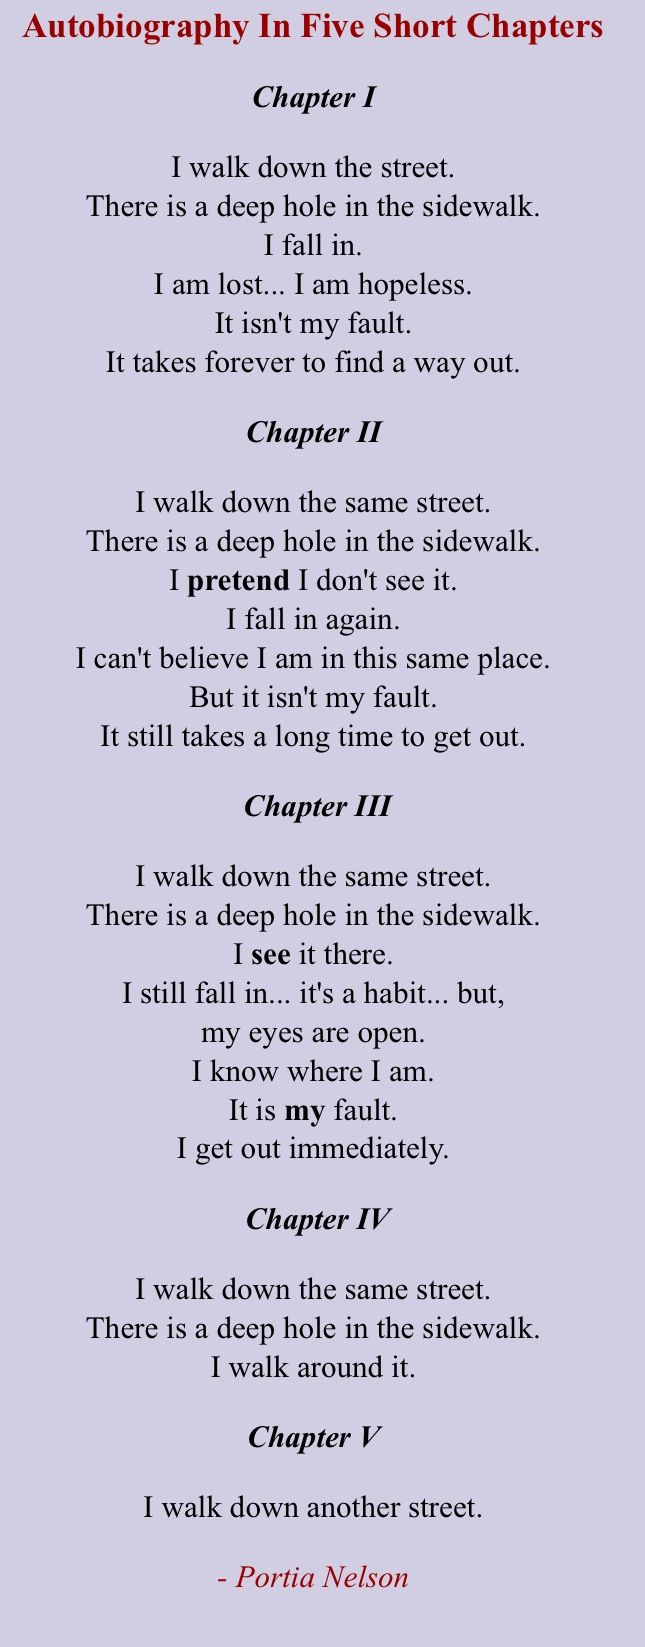 Poem – Autobiography in Five Chapters by Portia Nelson